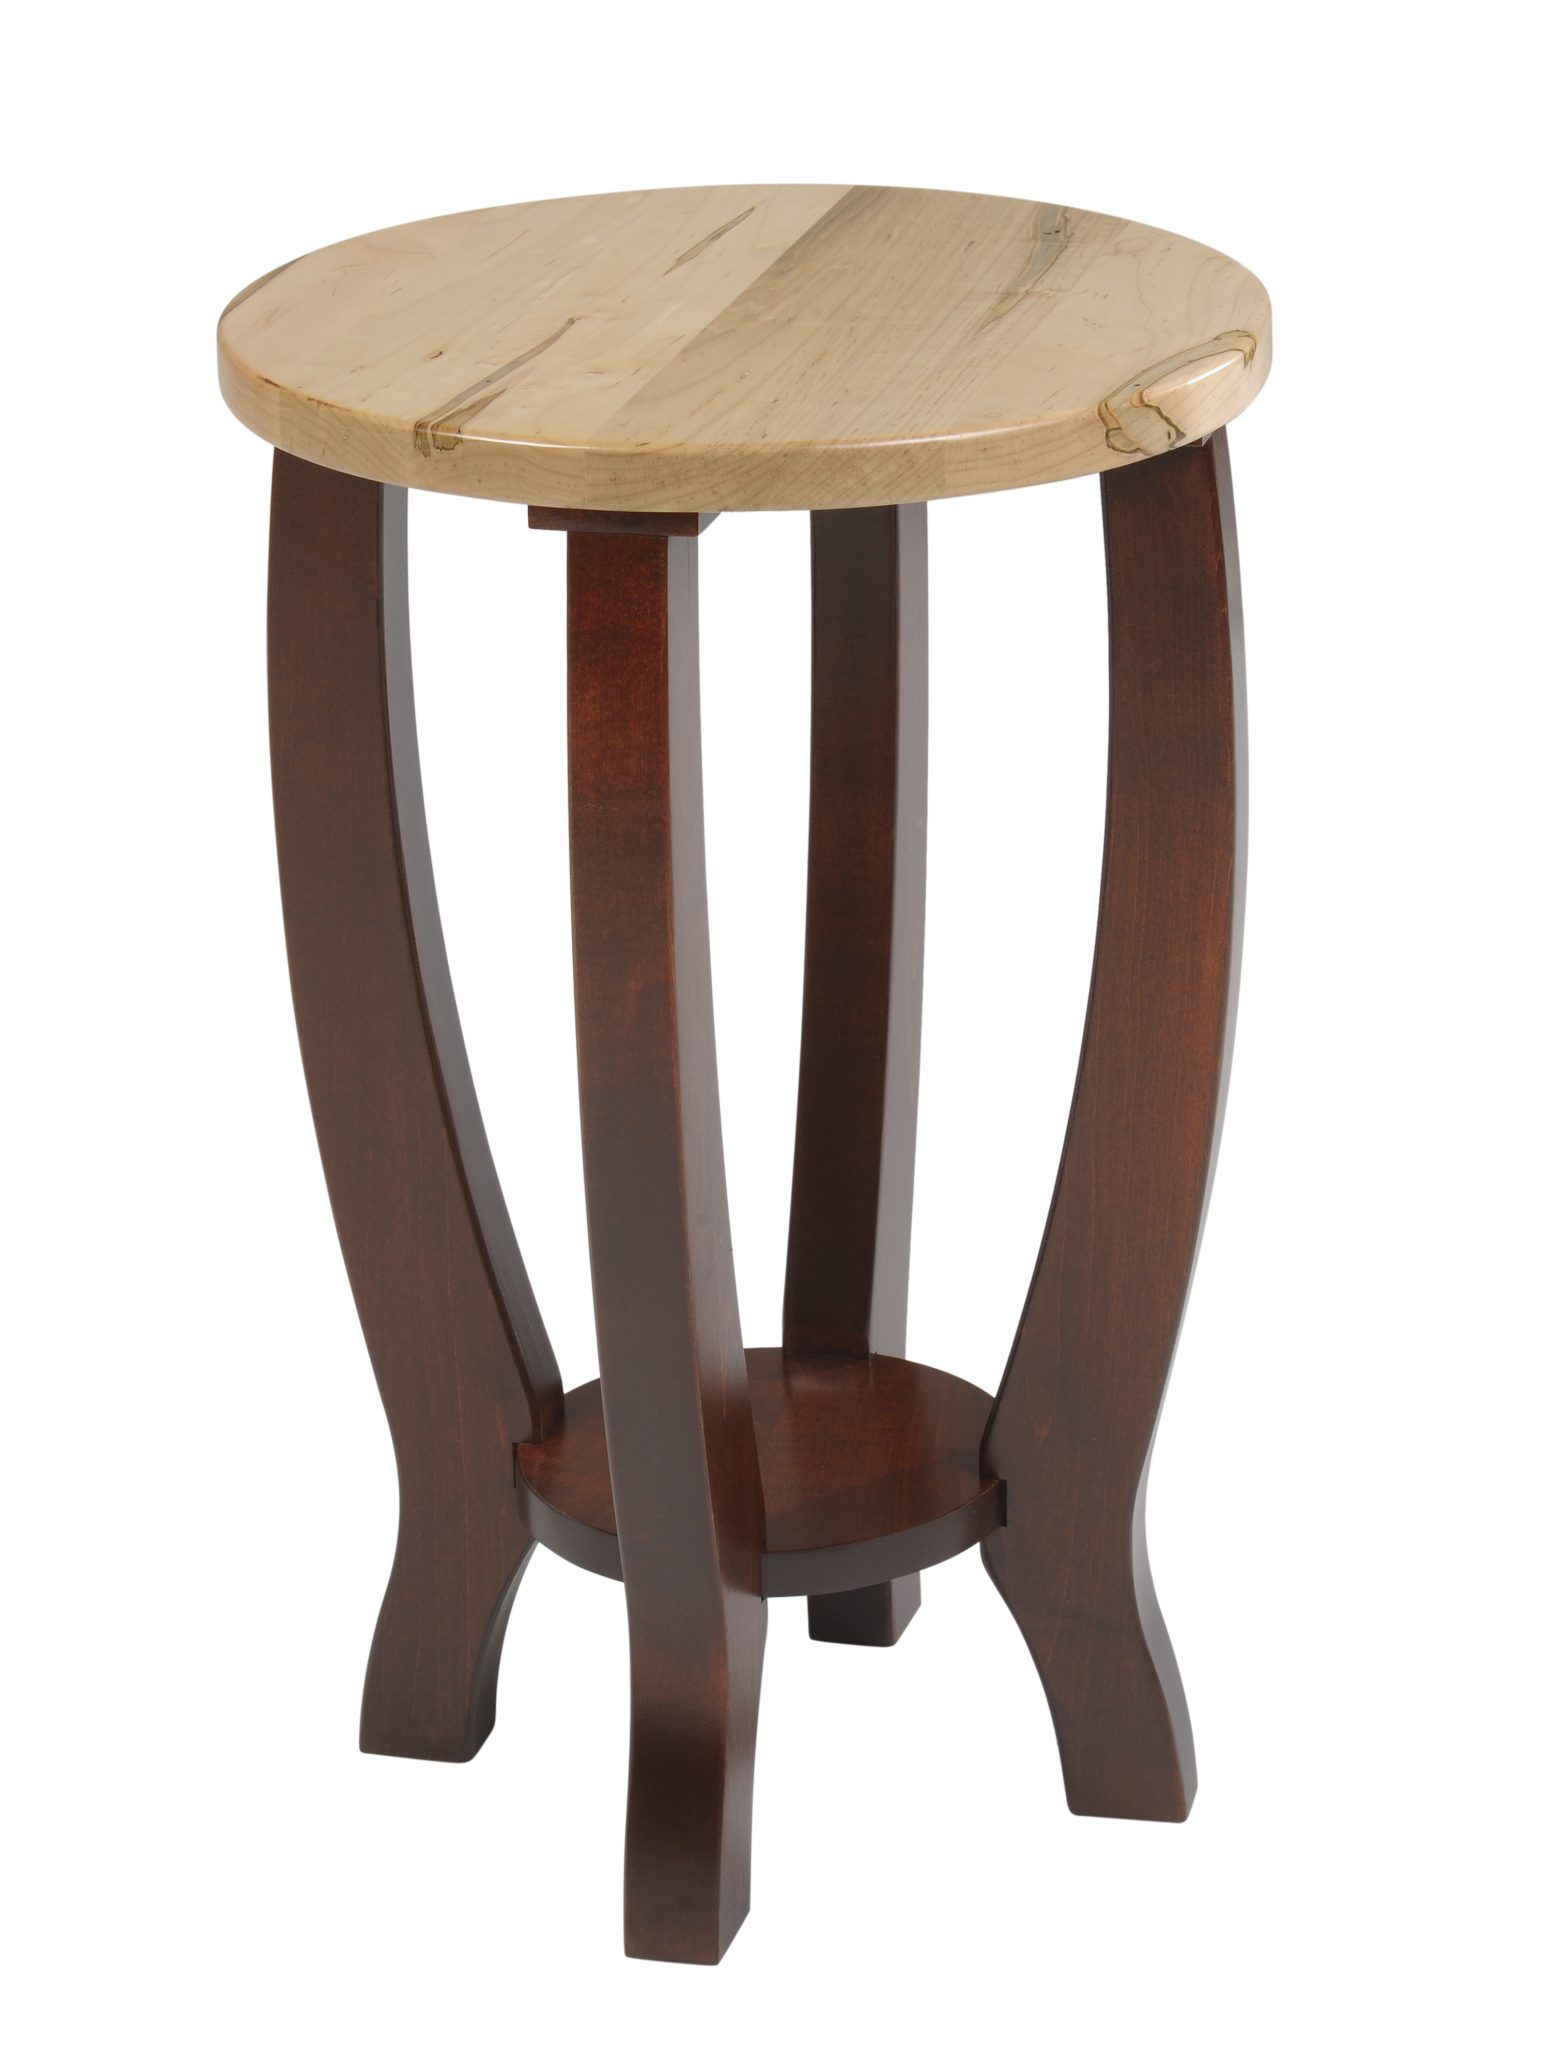 Yt240 New Port Round End Table Two Tone Occasional Round Tables End Coffee Hardwood Modern Style